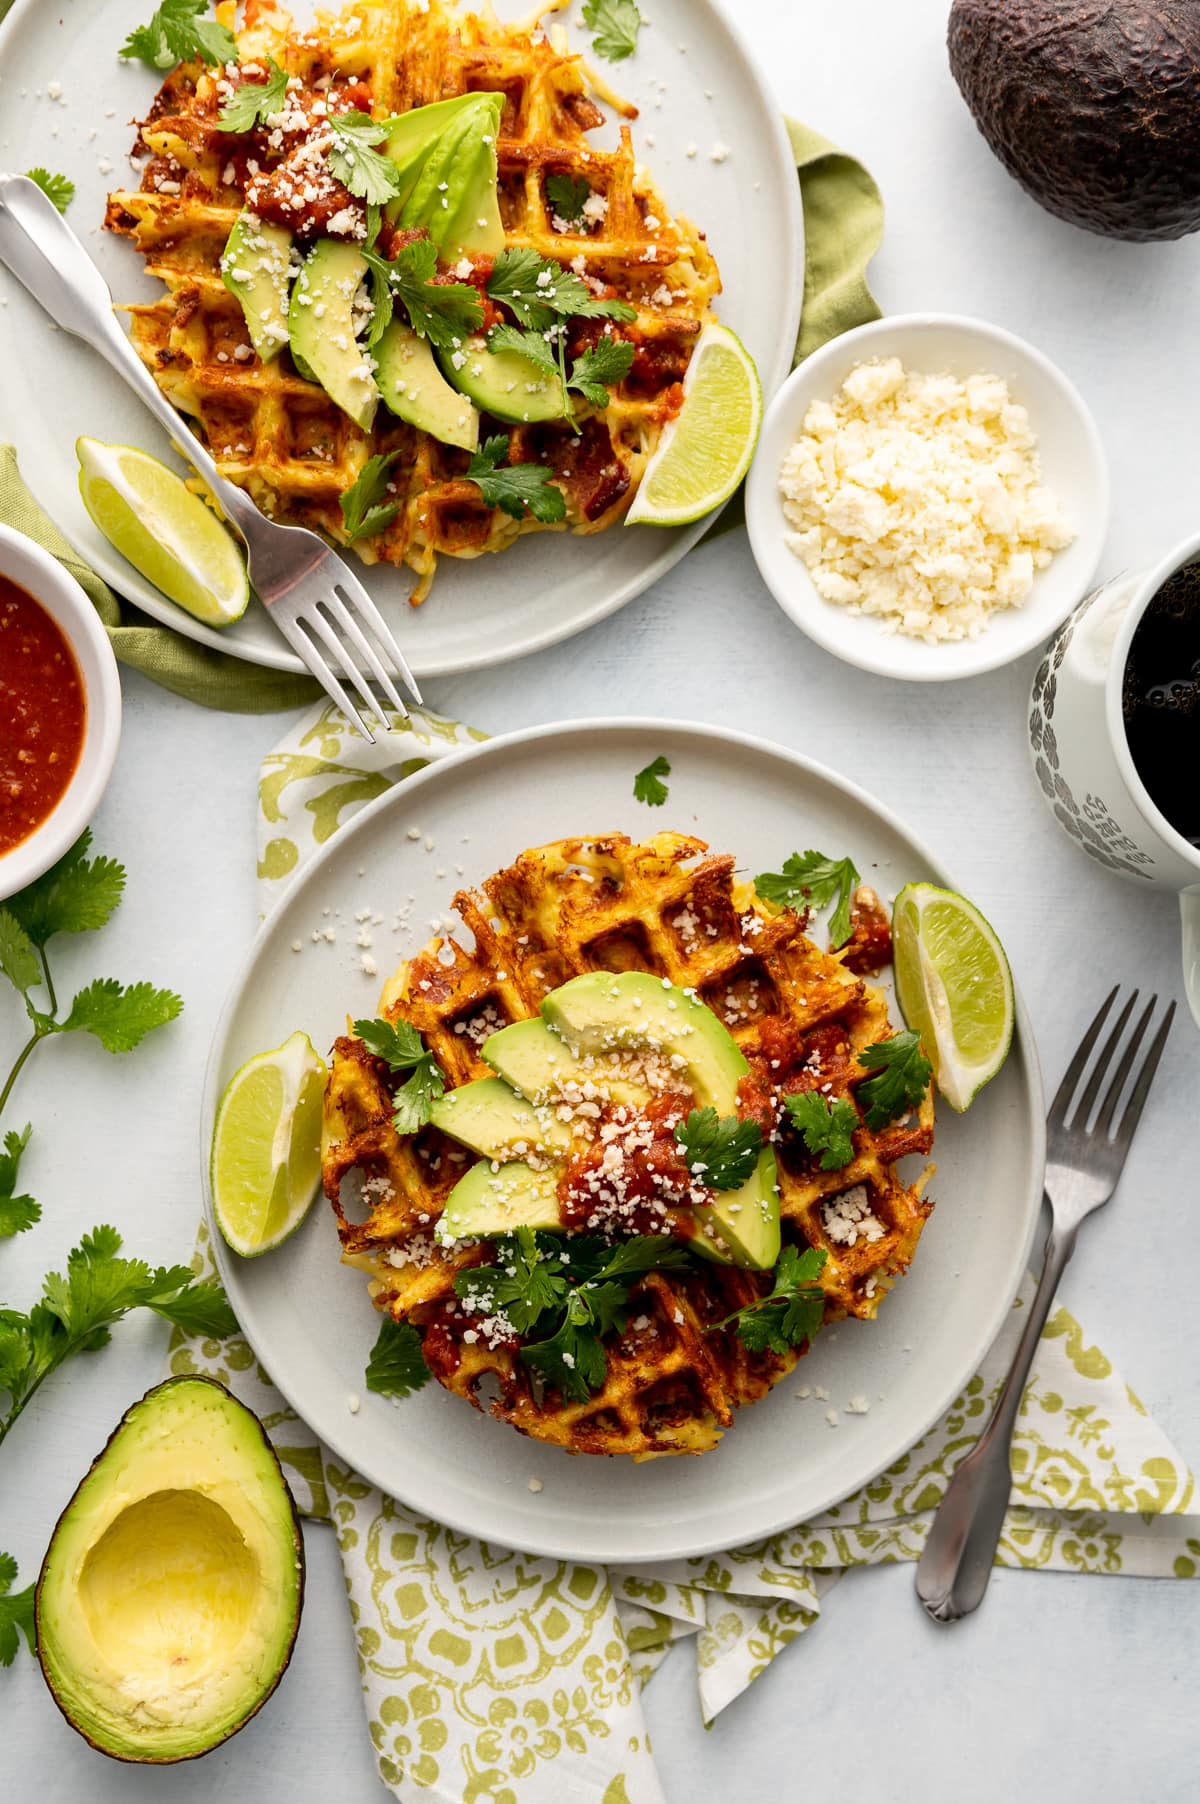 savory hash brown waffles with avocado slices lime slices whole and half avocados on white plates